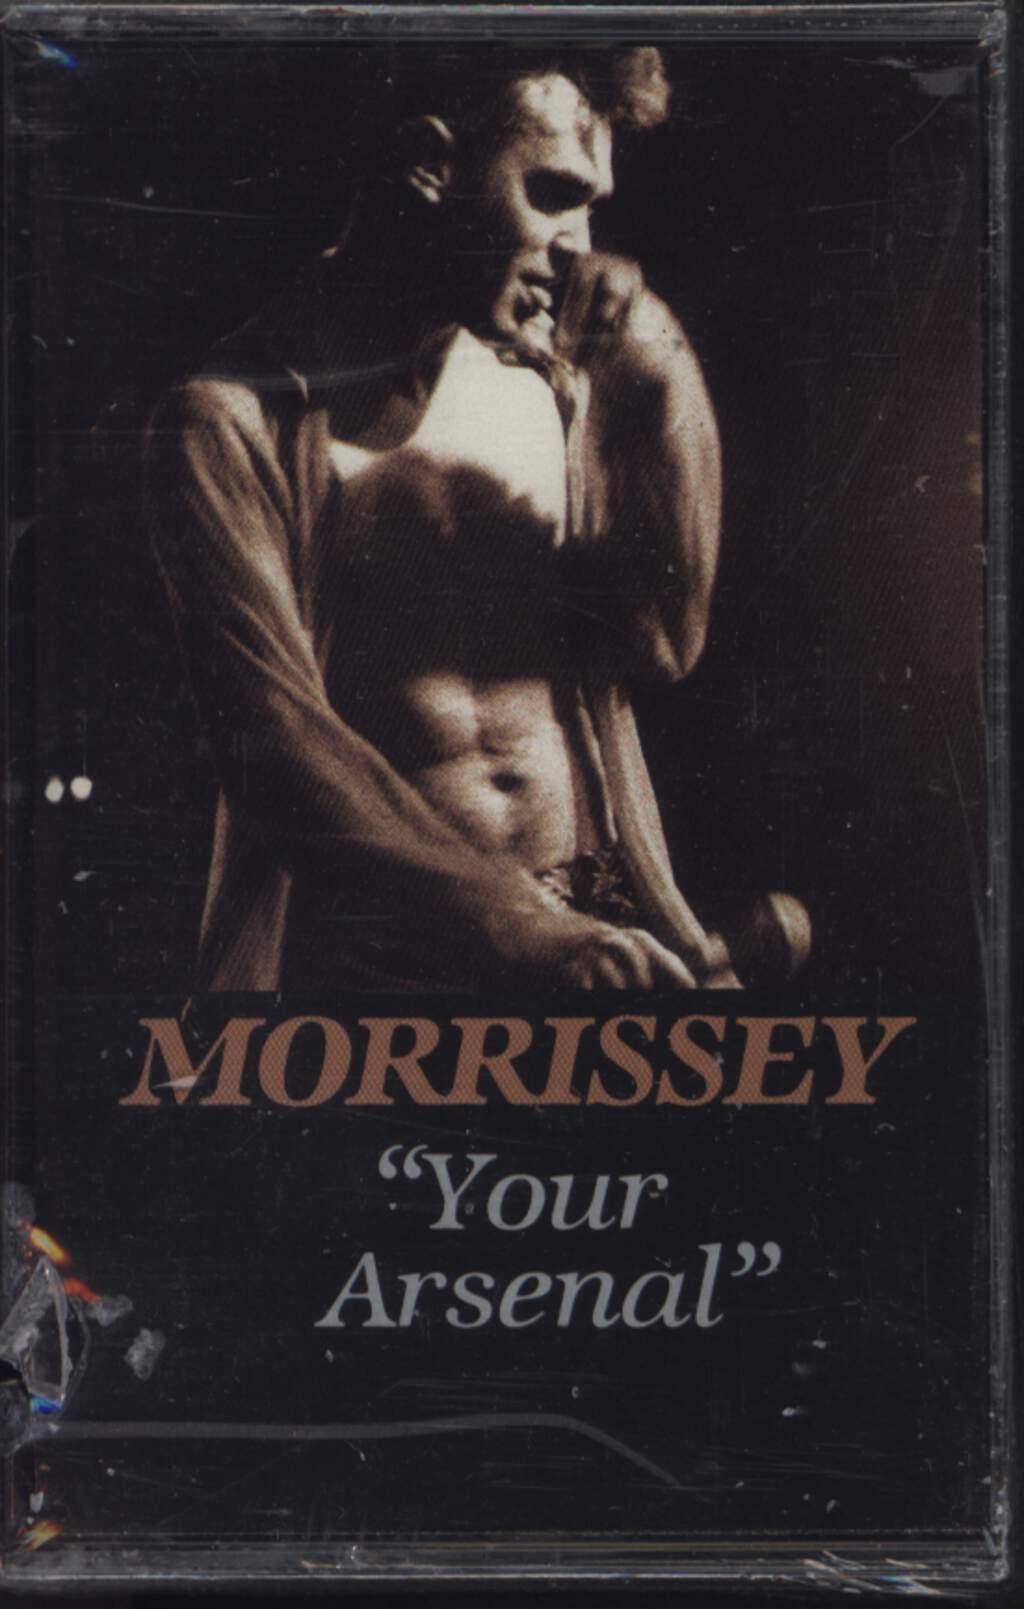 Morrissey: Your Arsenal, Compact Cassette